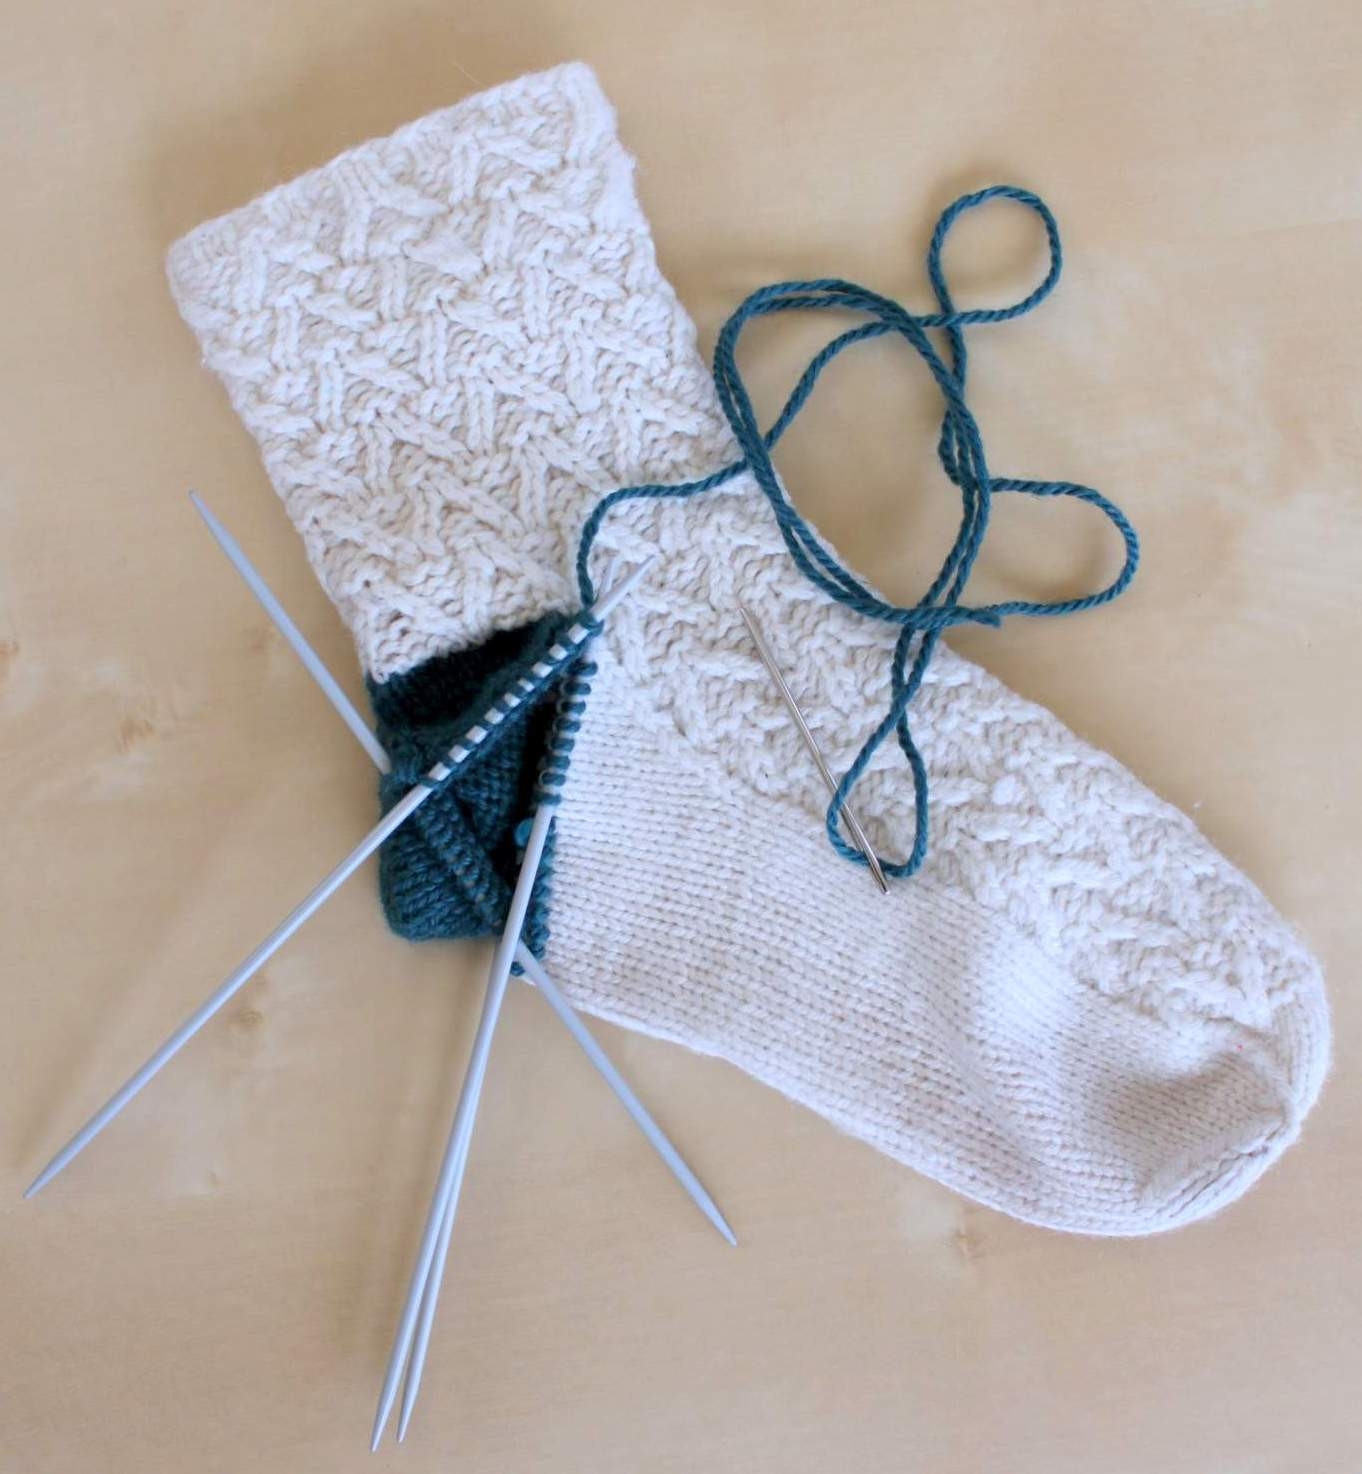 Knitting Picking Up Heel Stitches : Hand Knitted Things: Knitted Sock Heel Repair